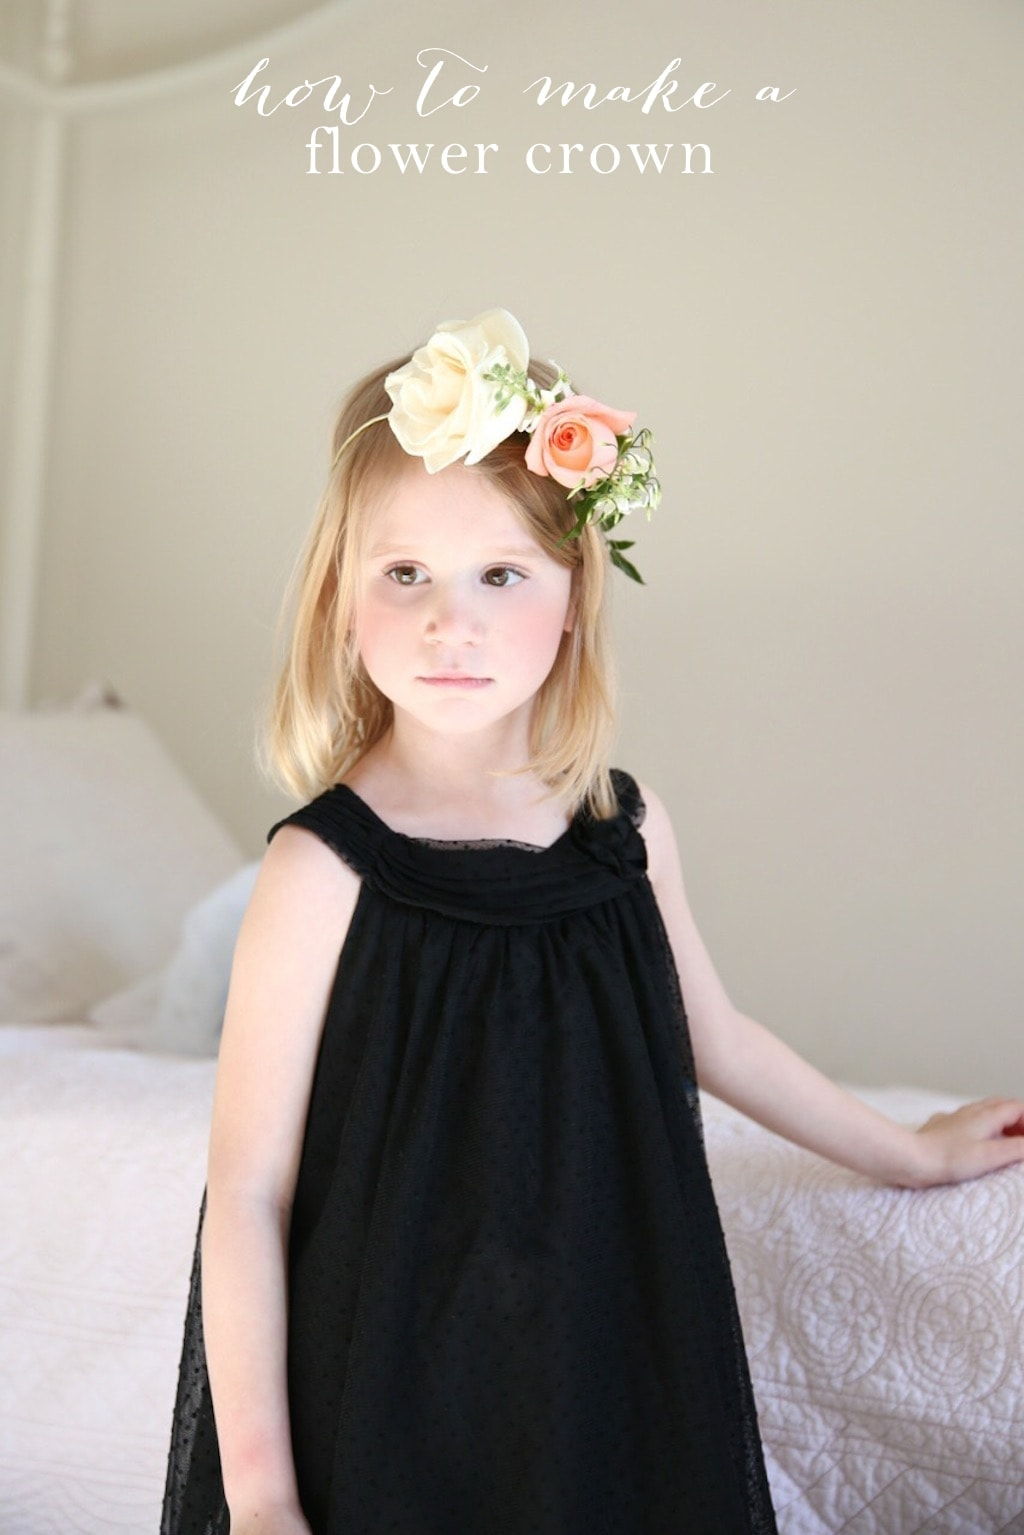 http://julieblanner.com/wp-content/uploads/2015/01/diy-flower-crown.jpg